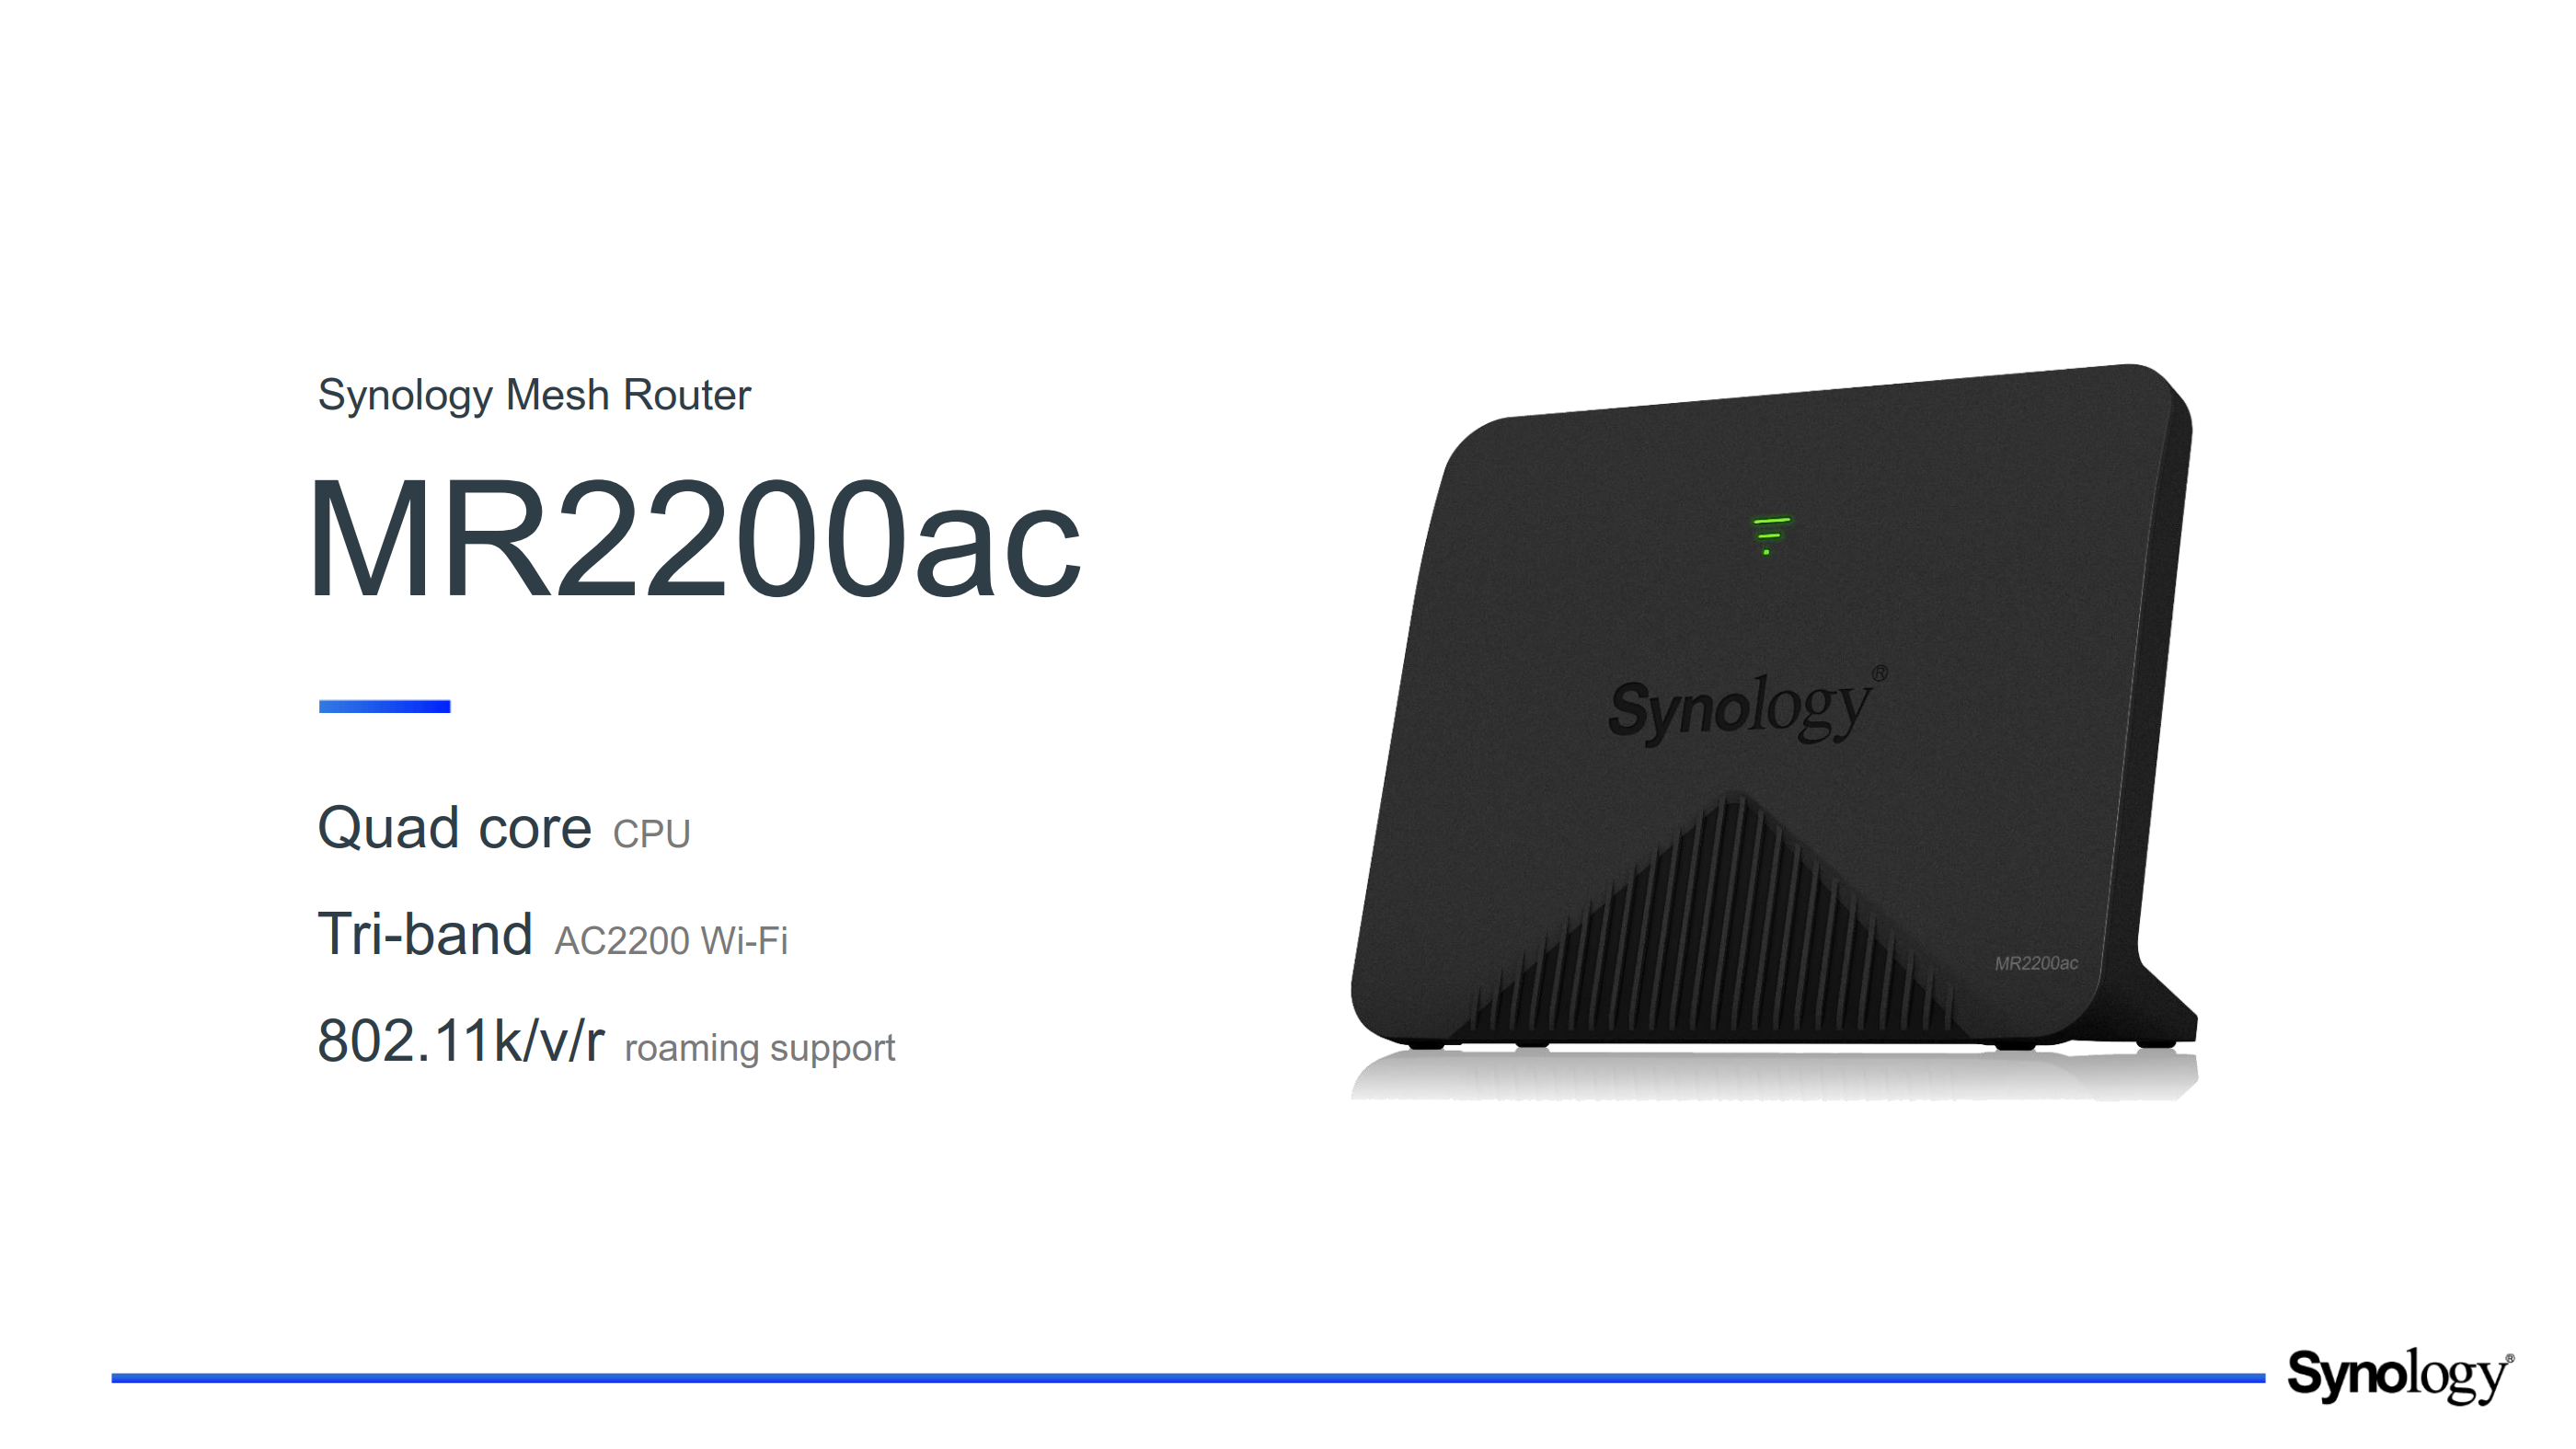 Next-Gen NAS: An Interview with Alex Wang, CEO of Synology